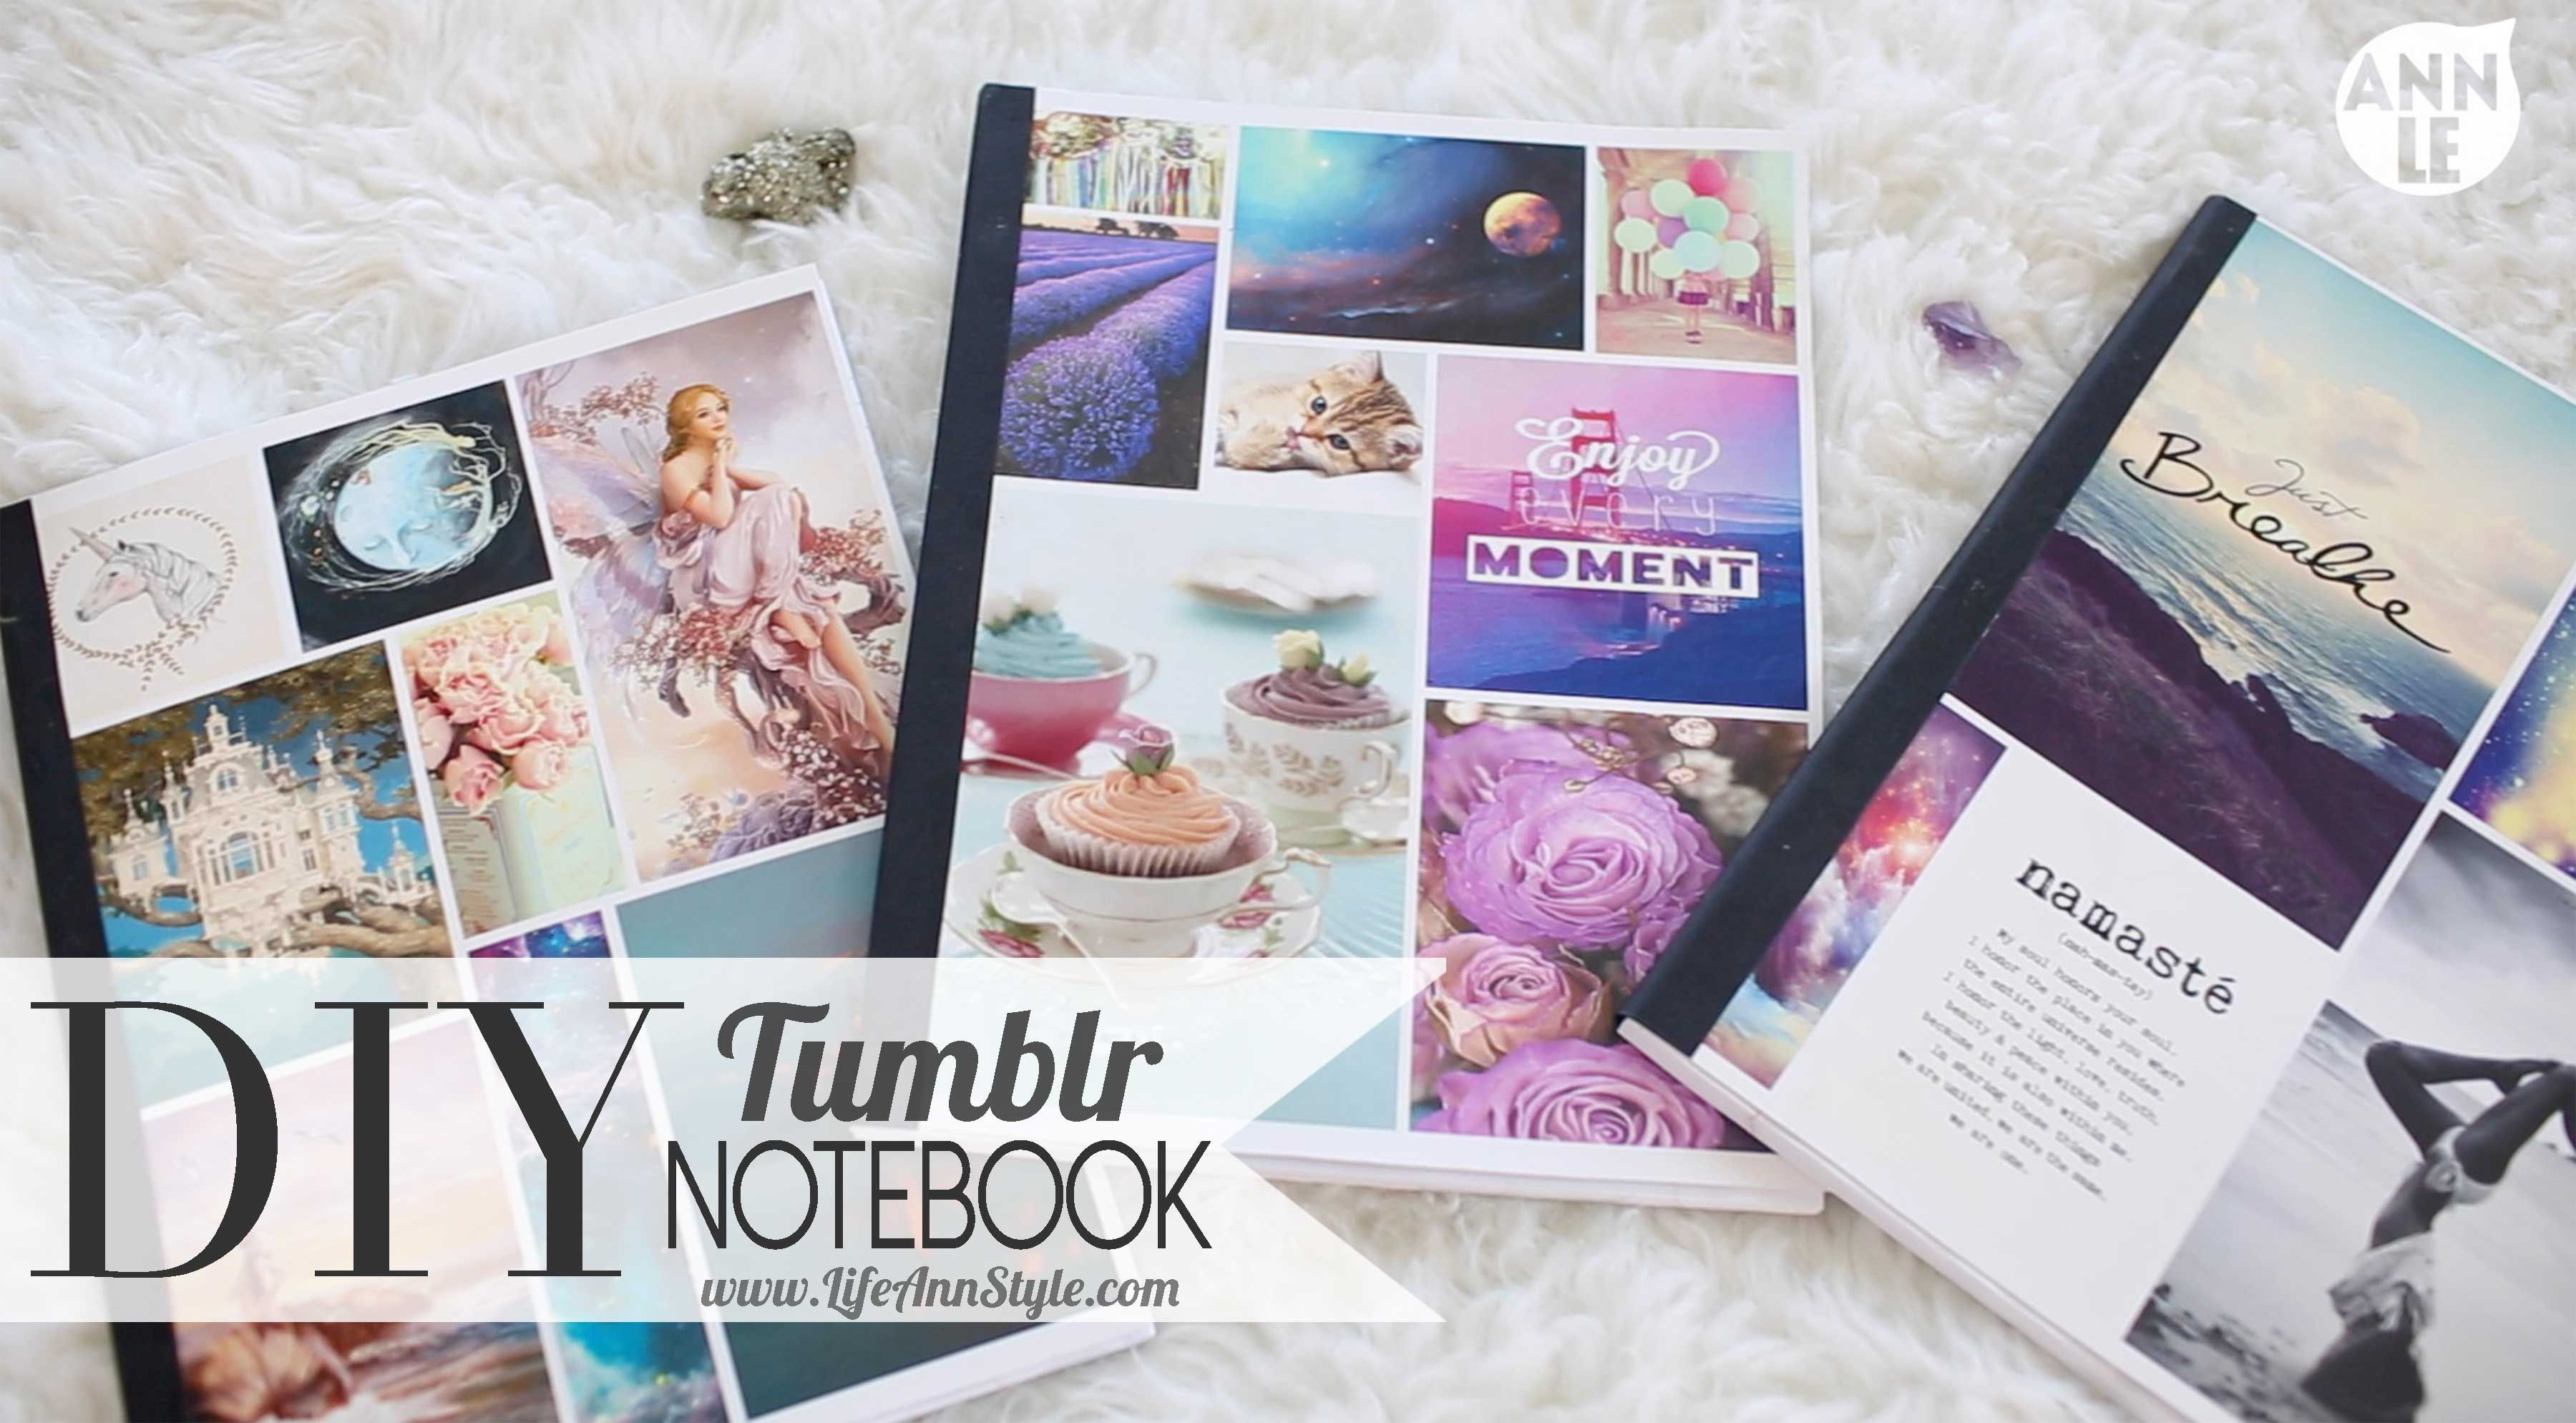 Book Cover Diy Xavier ~ Diy tumblr inspired notebooks notebook covers promotion